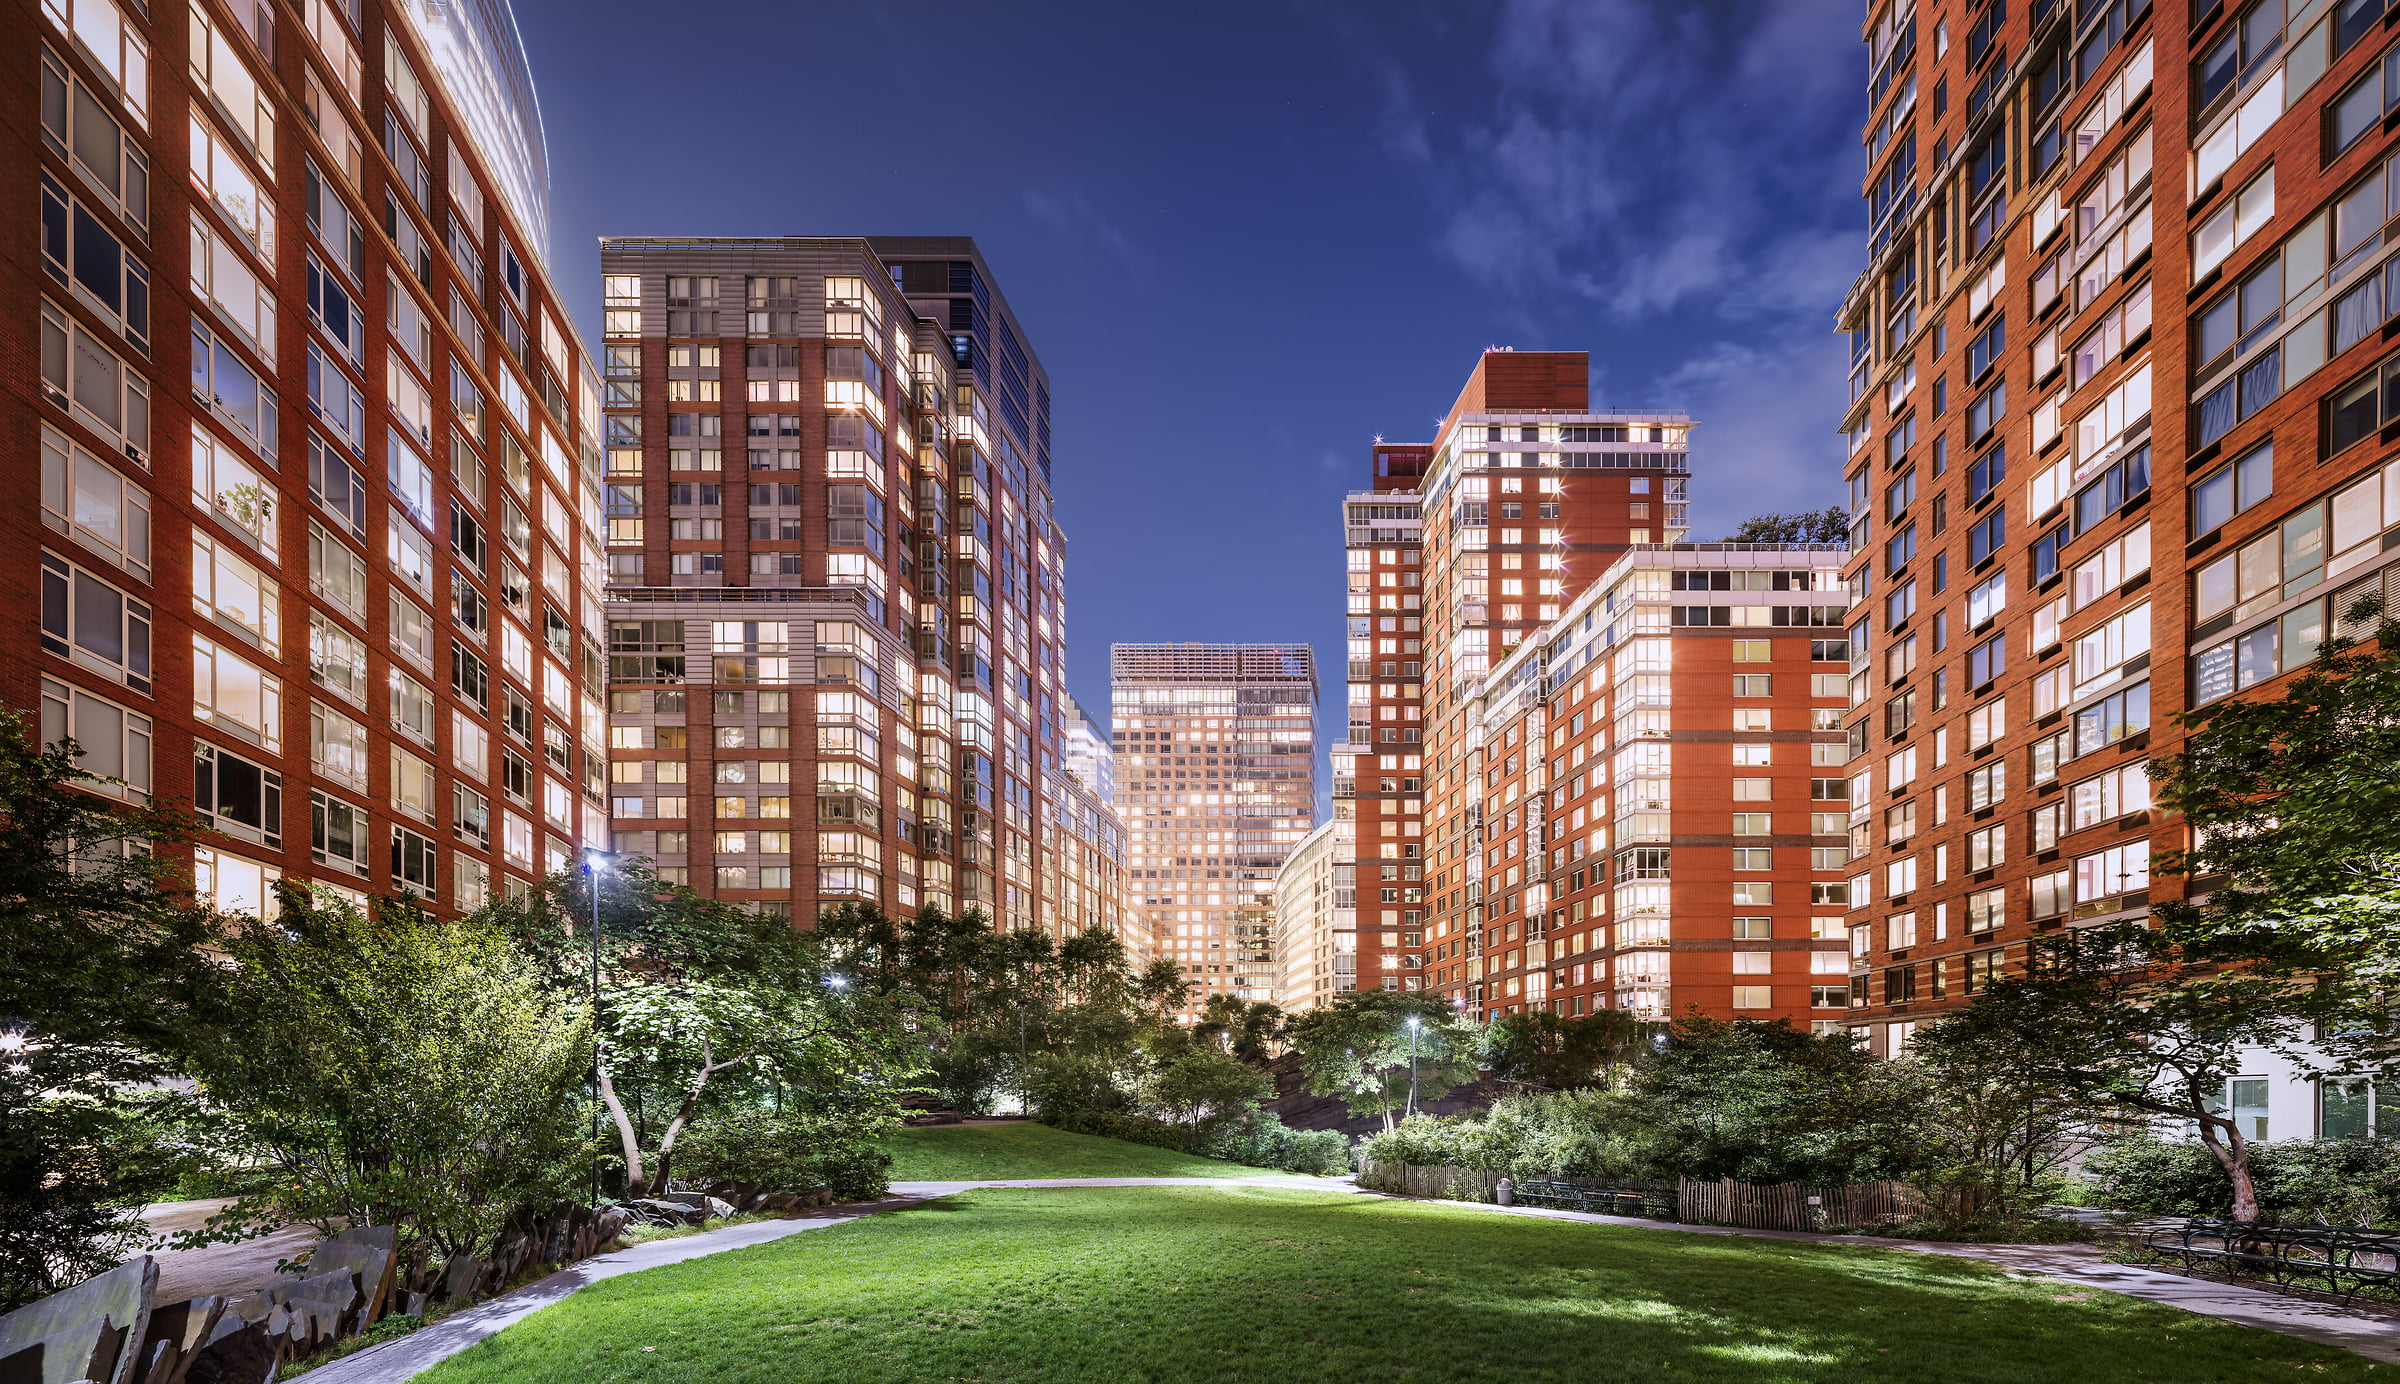 809 megapixels! A very high definition VAST photo of Teardrop Park in Battery Park City, NYC; created by Dan Piech